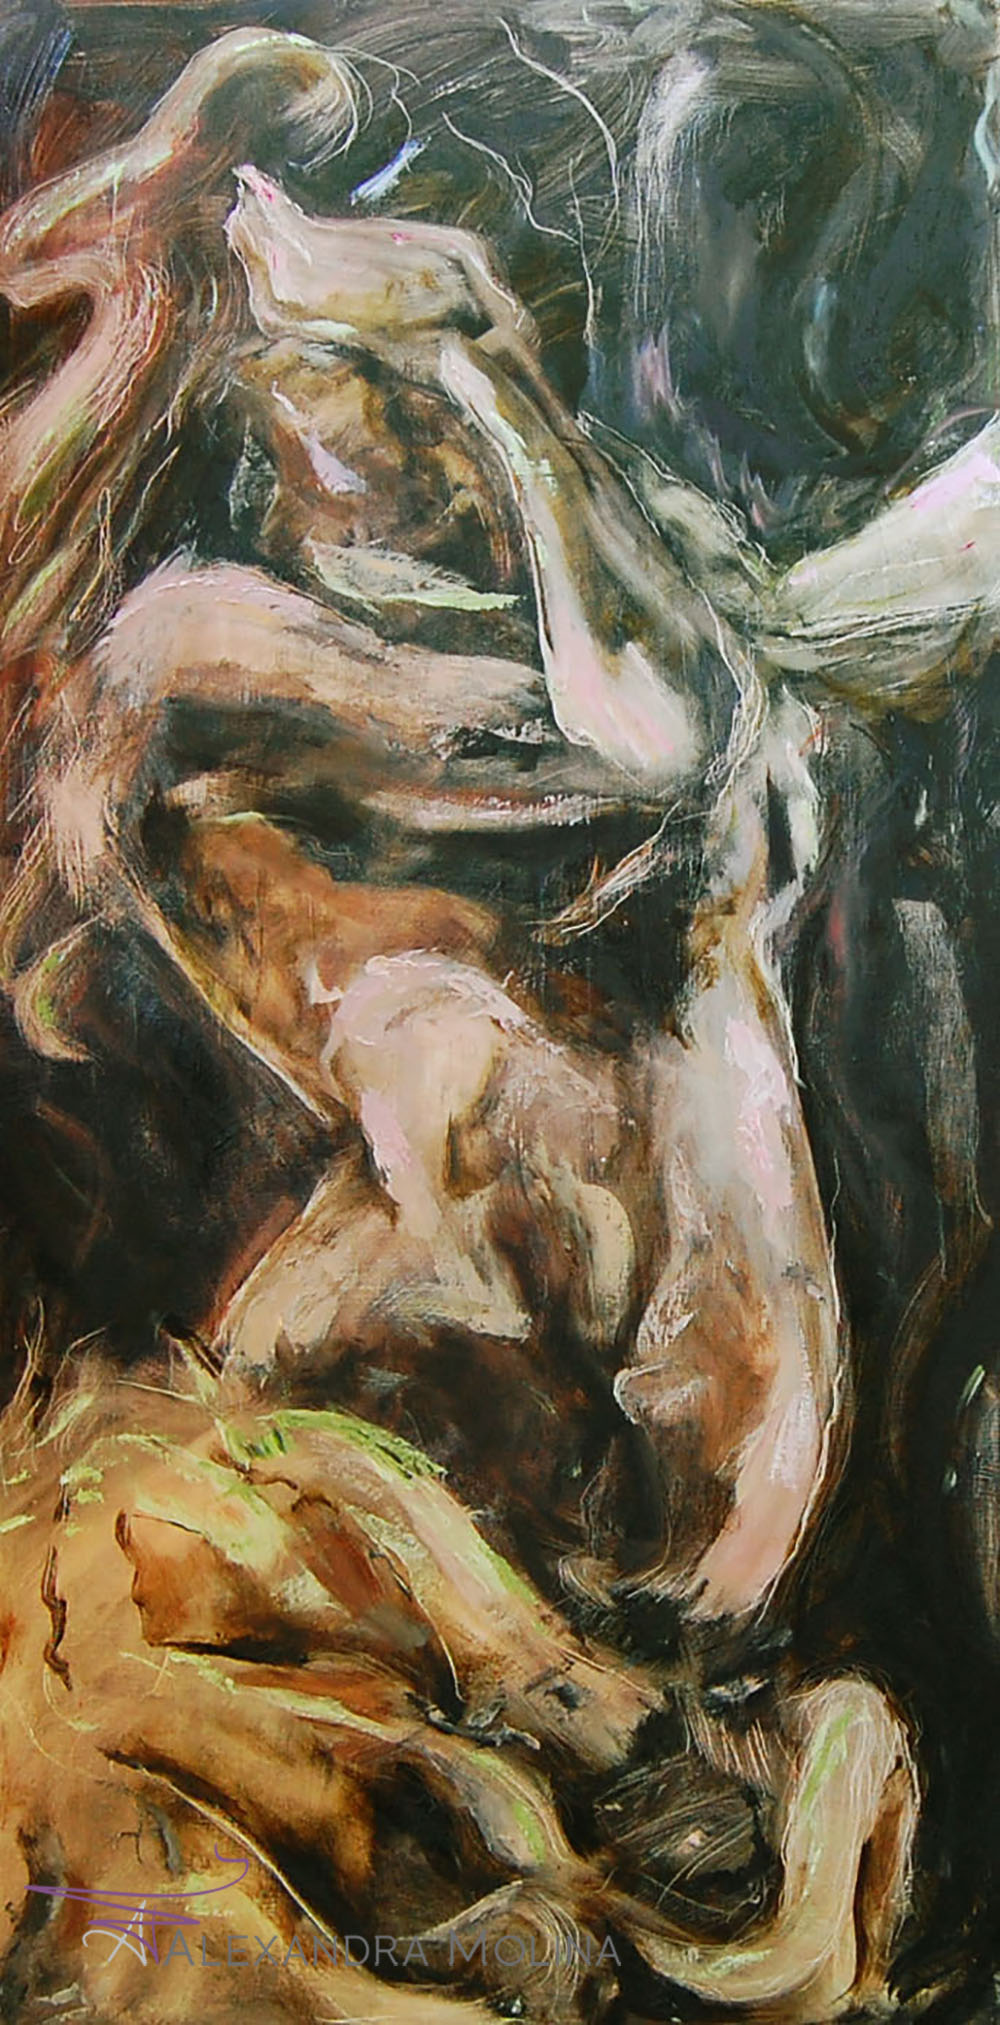 Internal,  2012   Oil on canvas - inquire for cost